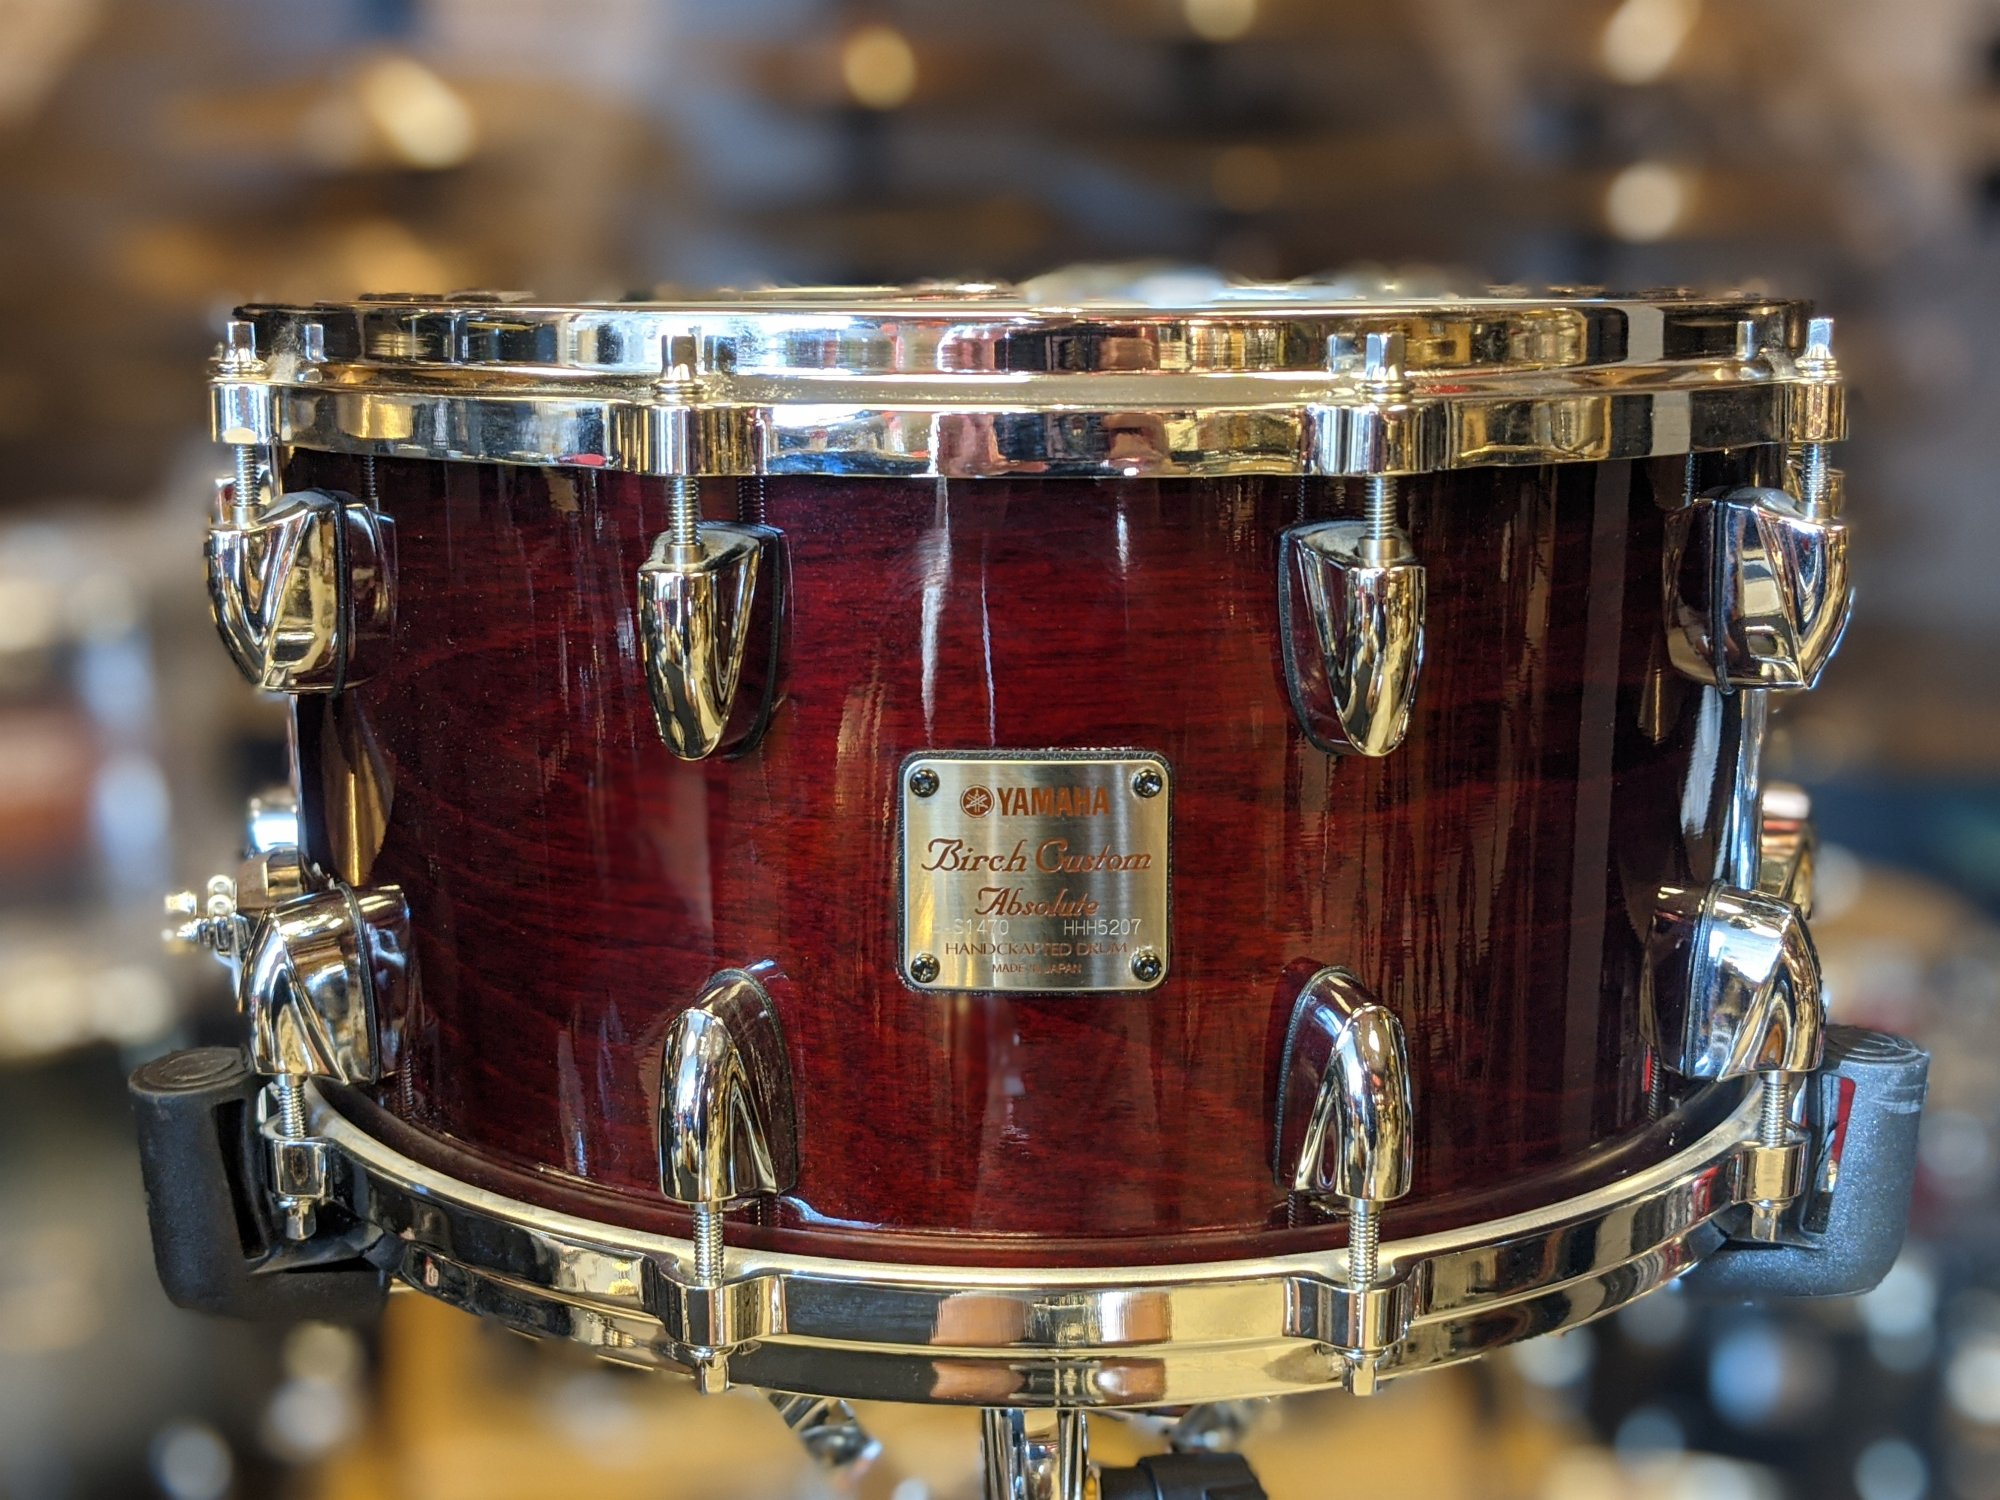 Yamaha Birch Custom Absolute Snare Drum 7 x 14